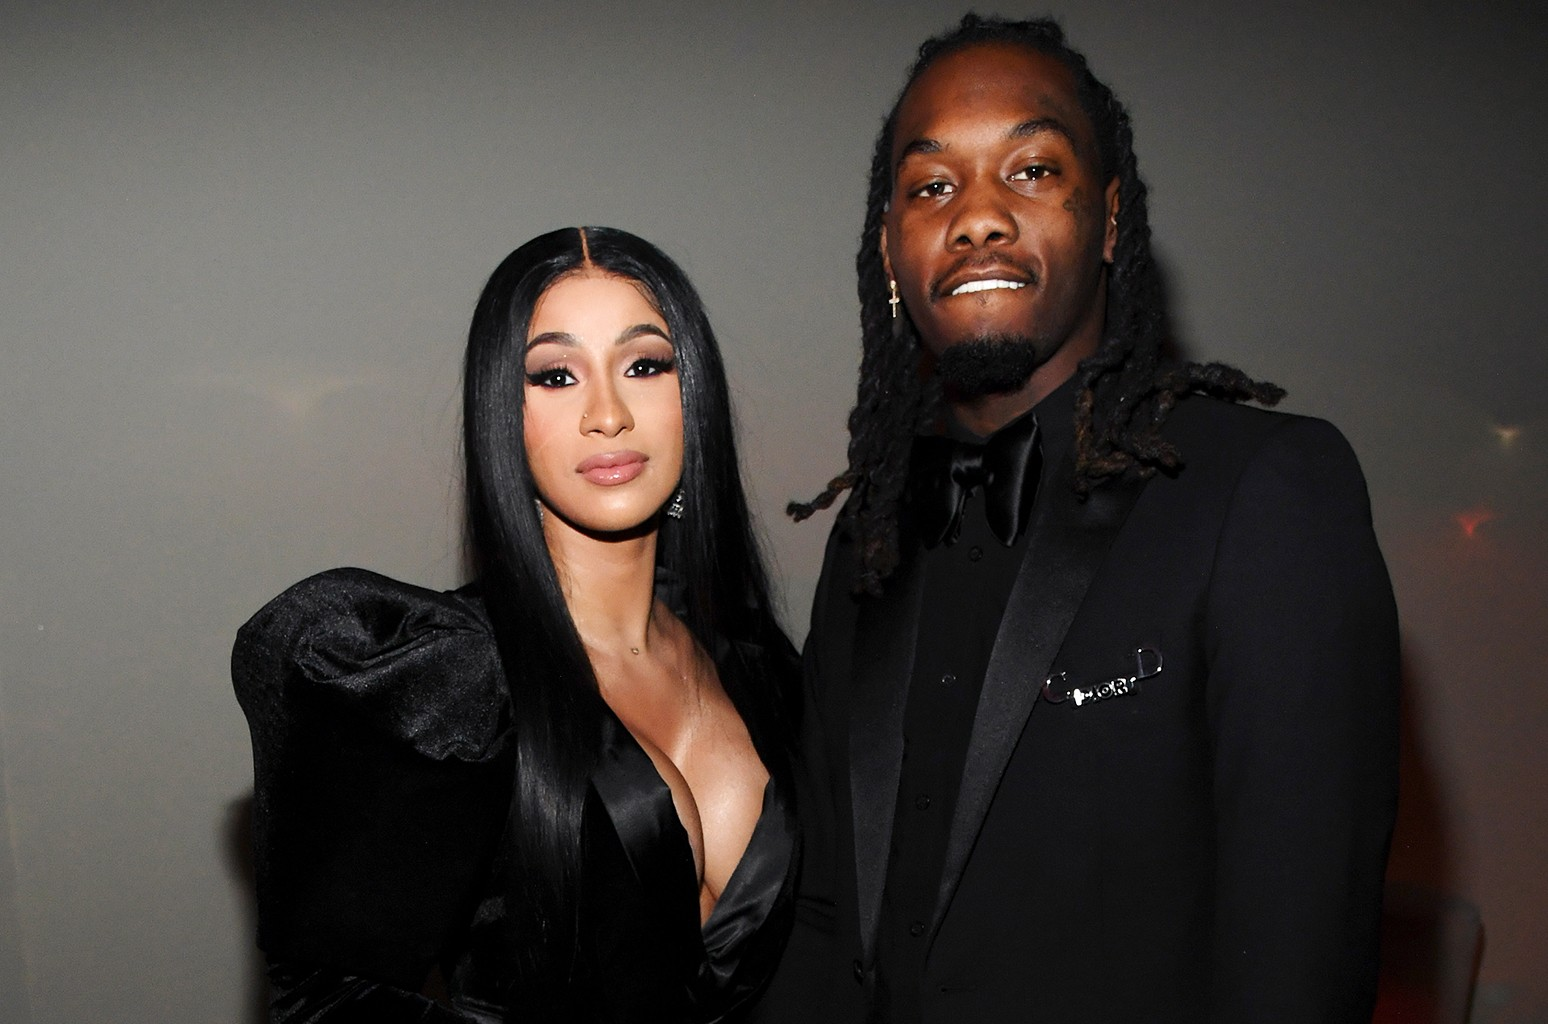 Cardi B Gives Offset a Steamy Dance At Her Birthday Party | Billboard